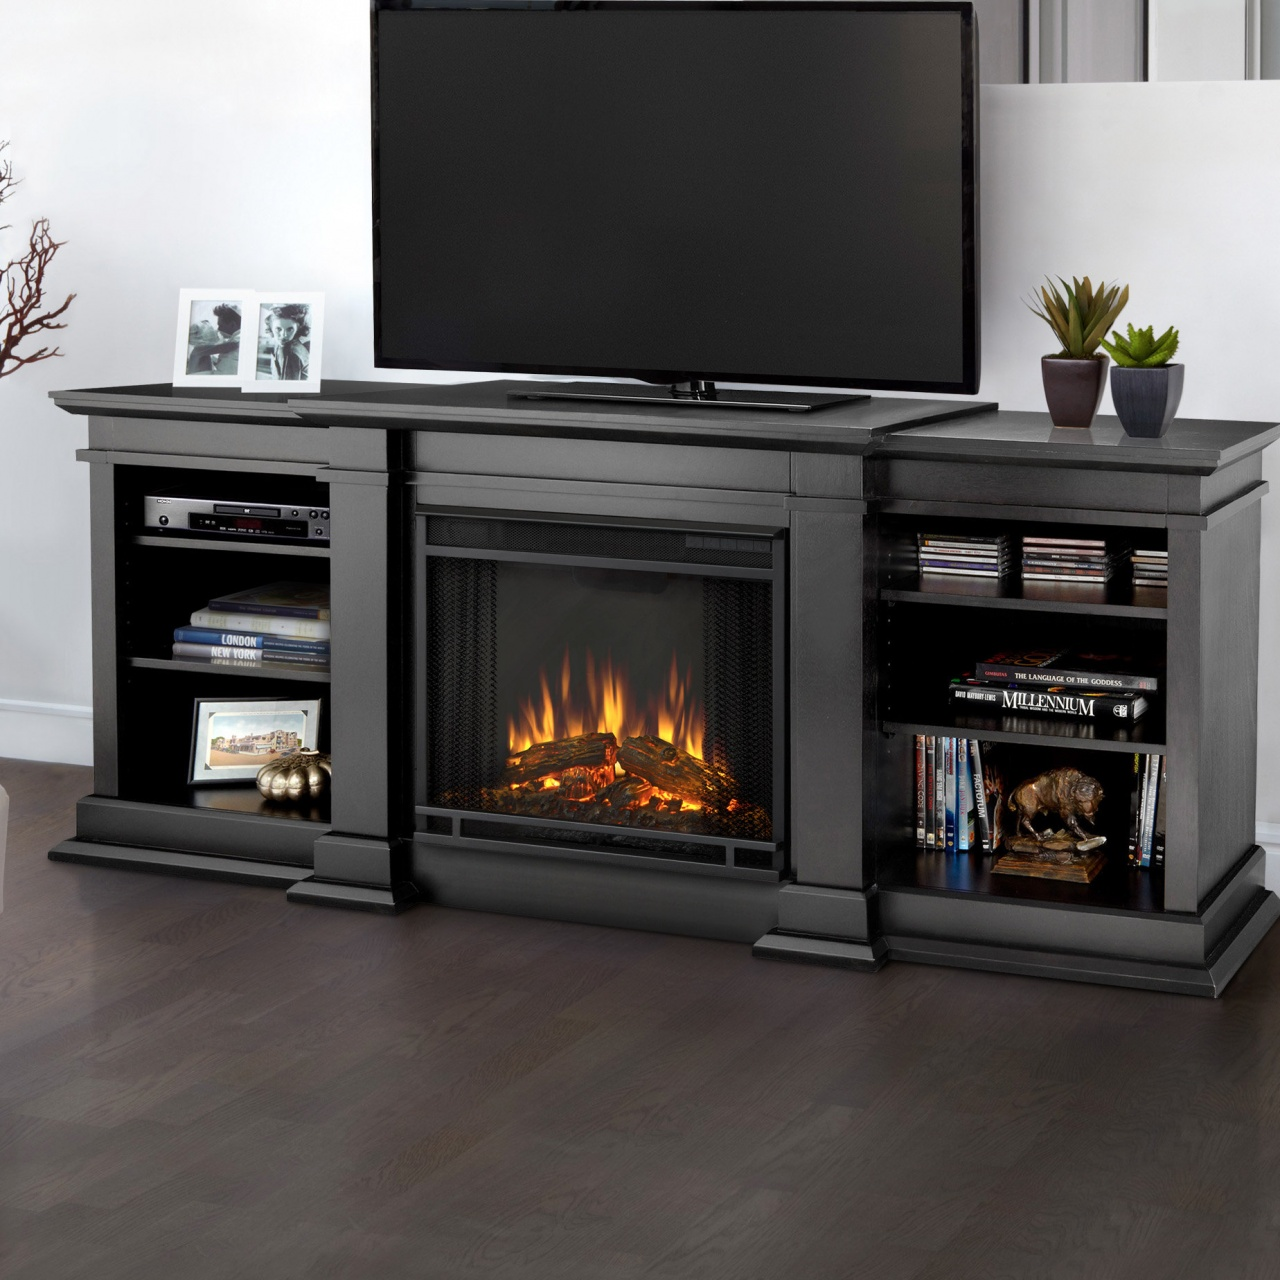 72 inch electric fireplace media console entertainment centers entertainment center with tv and from 72 inch electric fireplace media console